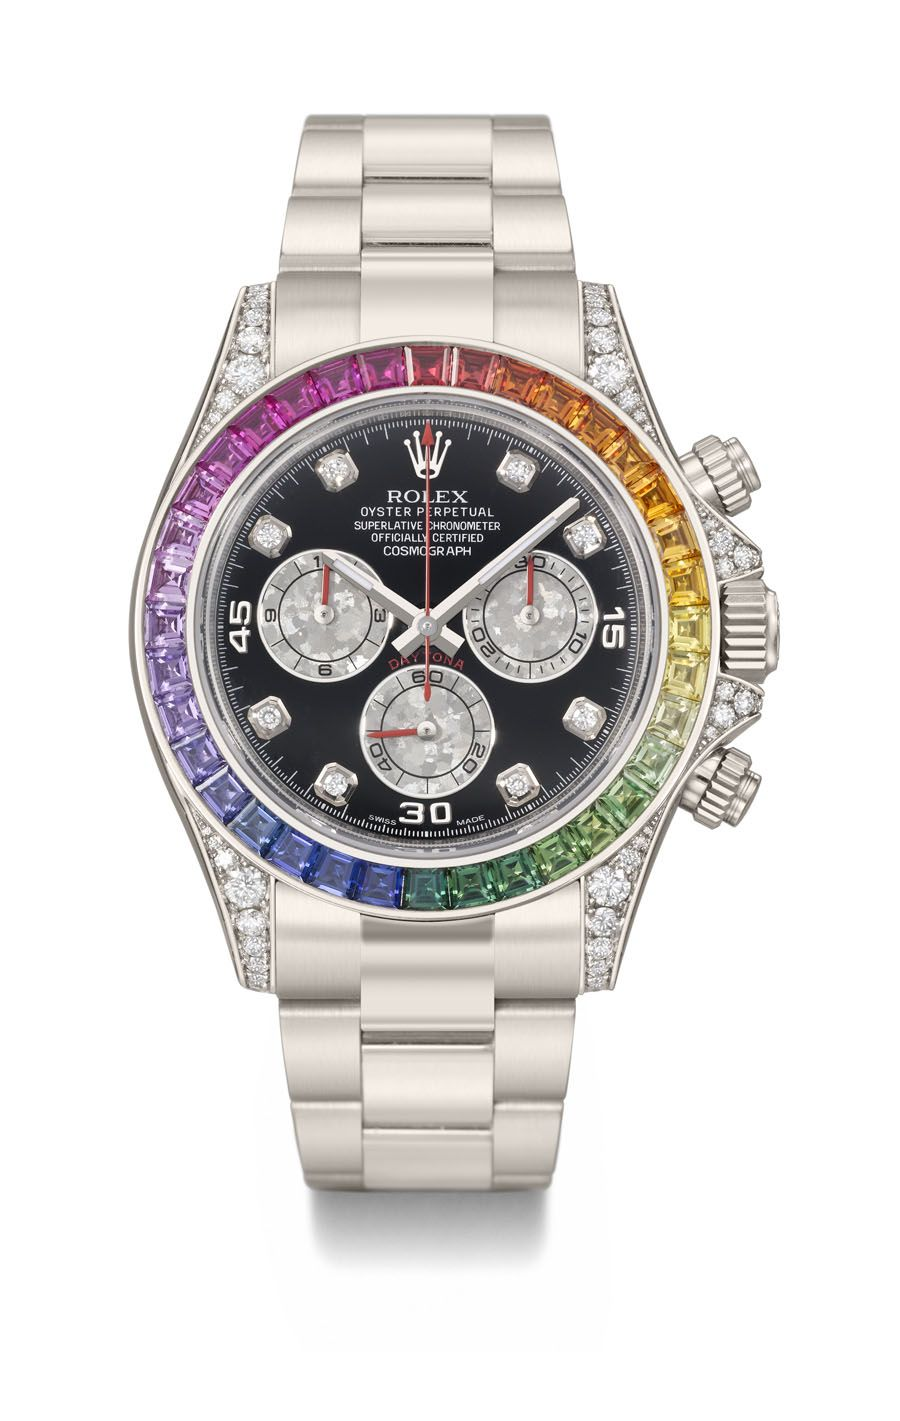 55c4b1972bc12 Christies marks 50 years of the Rolex Daytona watch with an auction ...